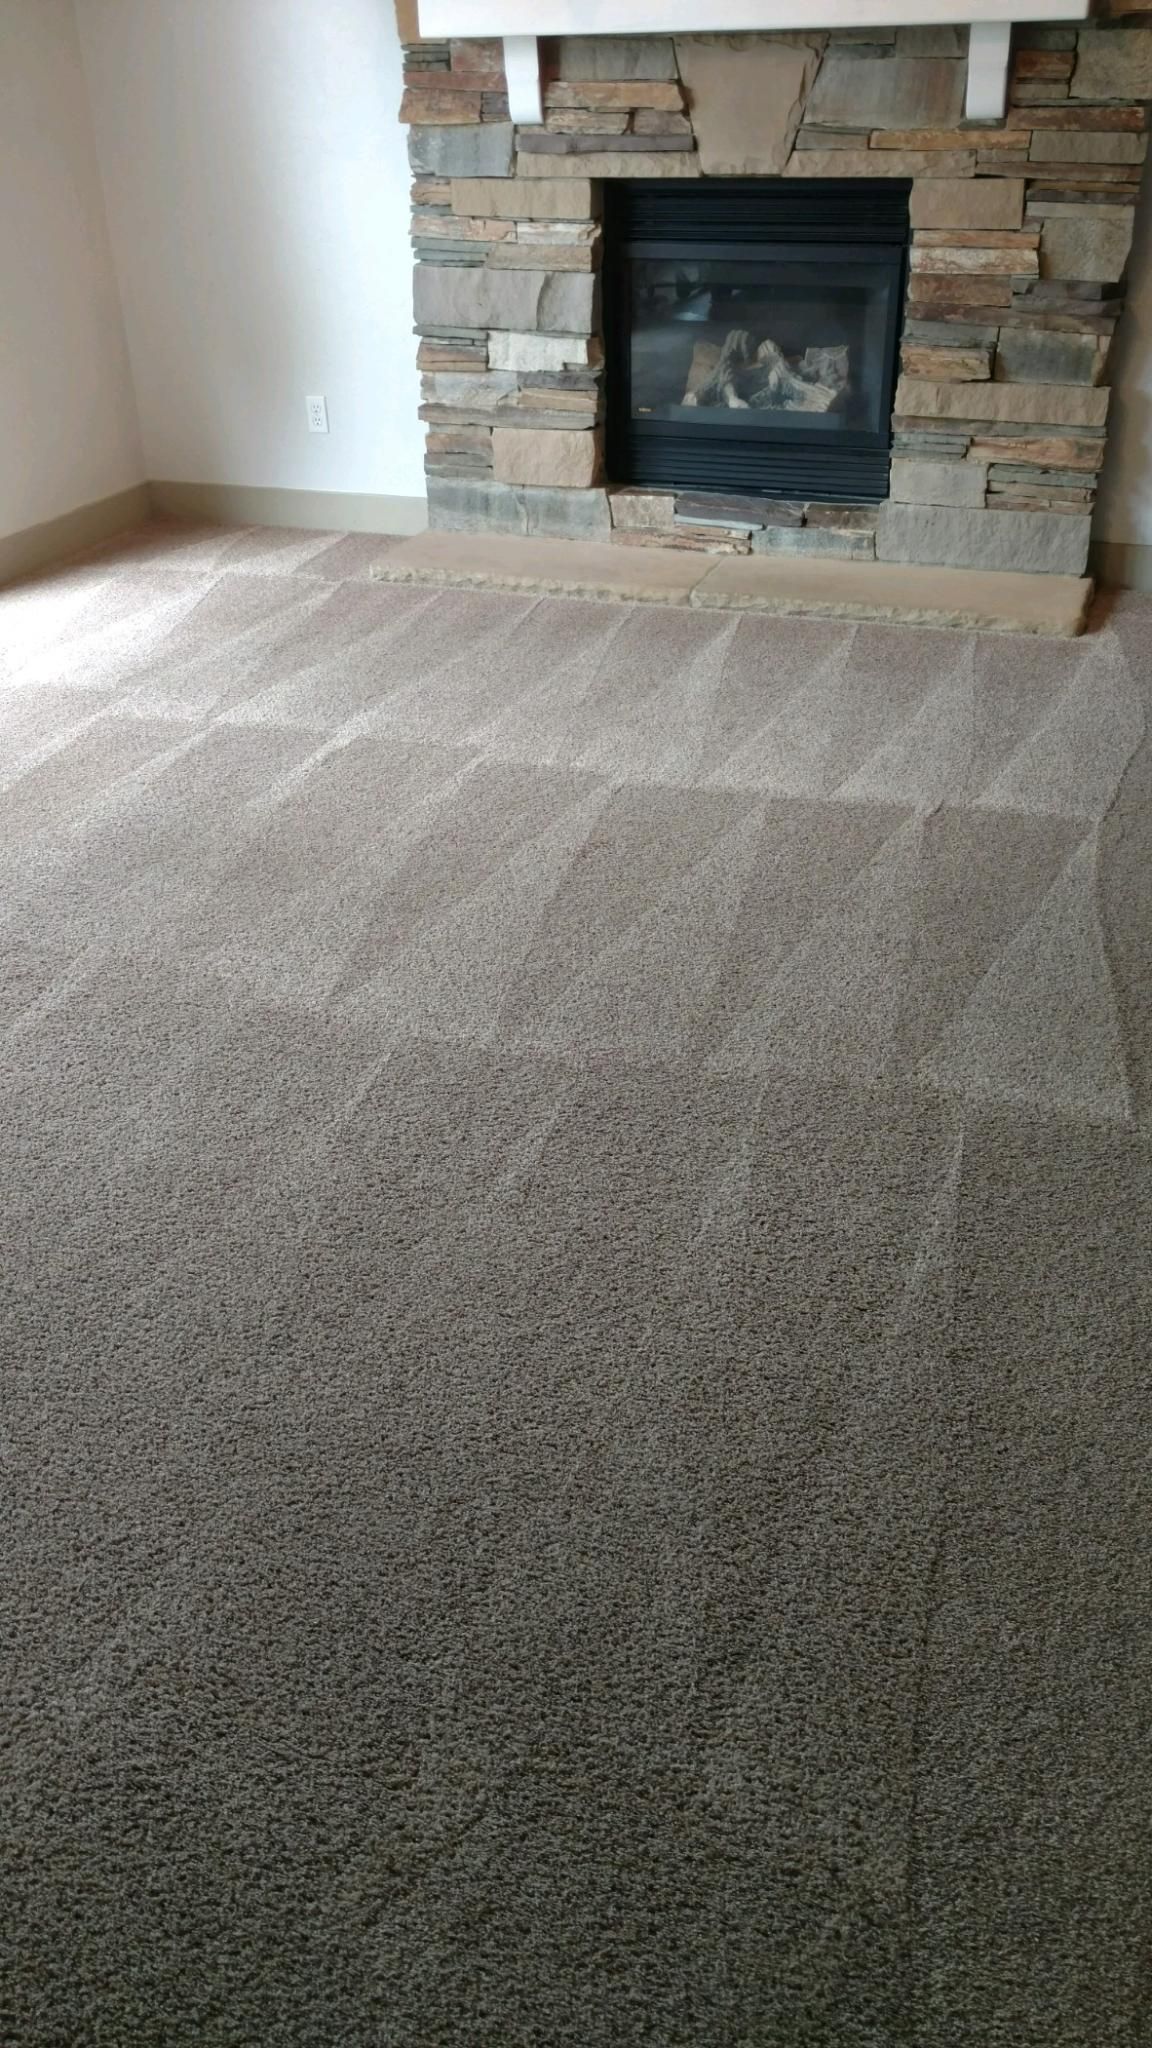 Kelly's Deep Clean Carpet & Upholstery Cleaning image 10